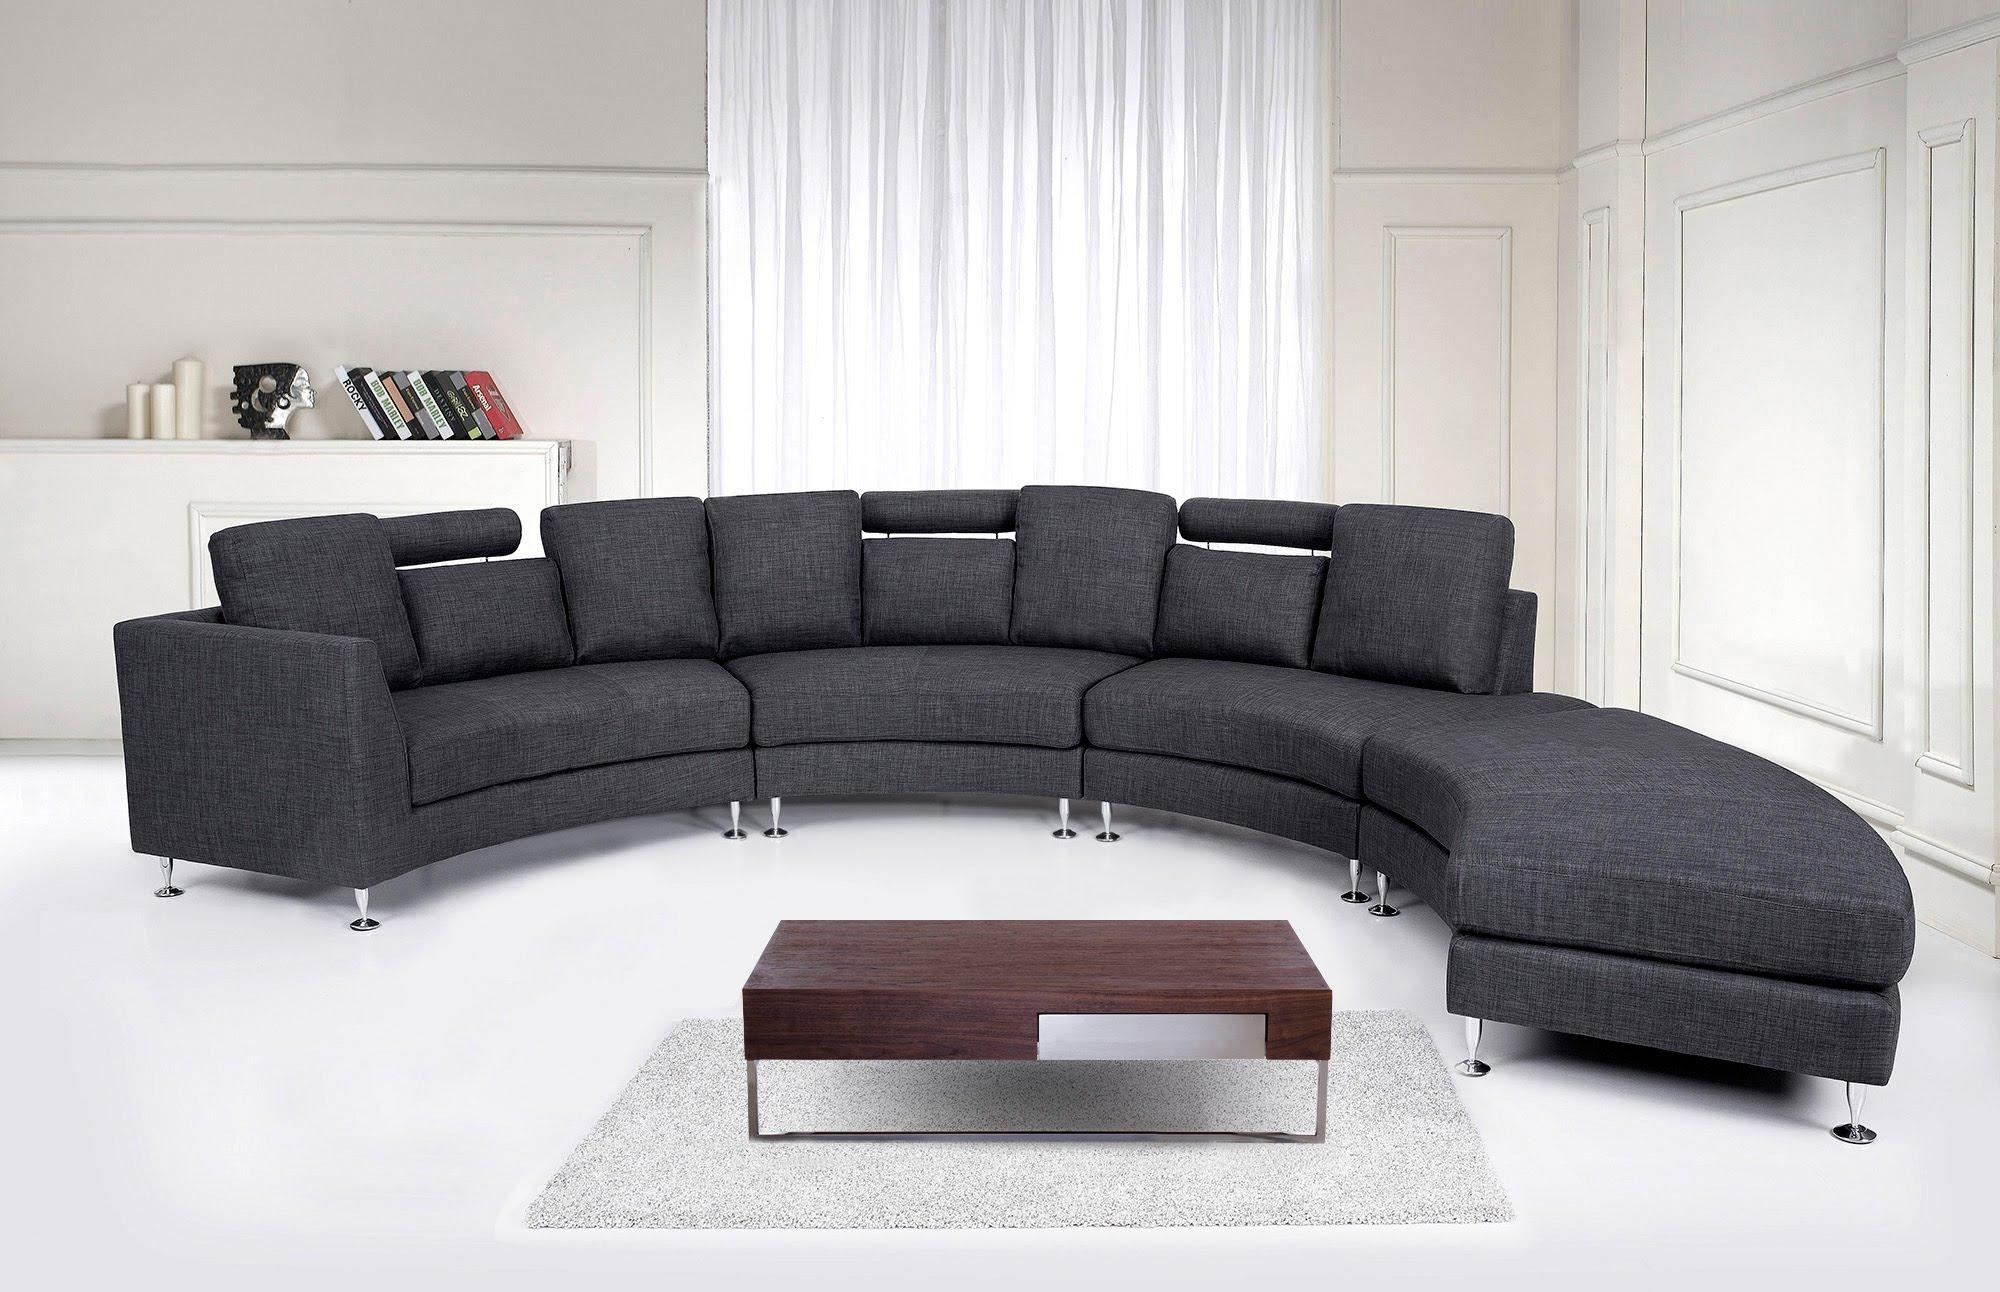 Excellent Rounded Sofa Bed #4727 Within Rounded Sofa (Image 5 of 20)